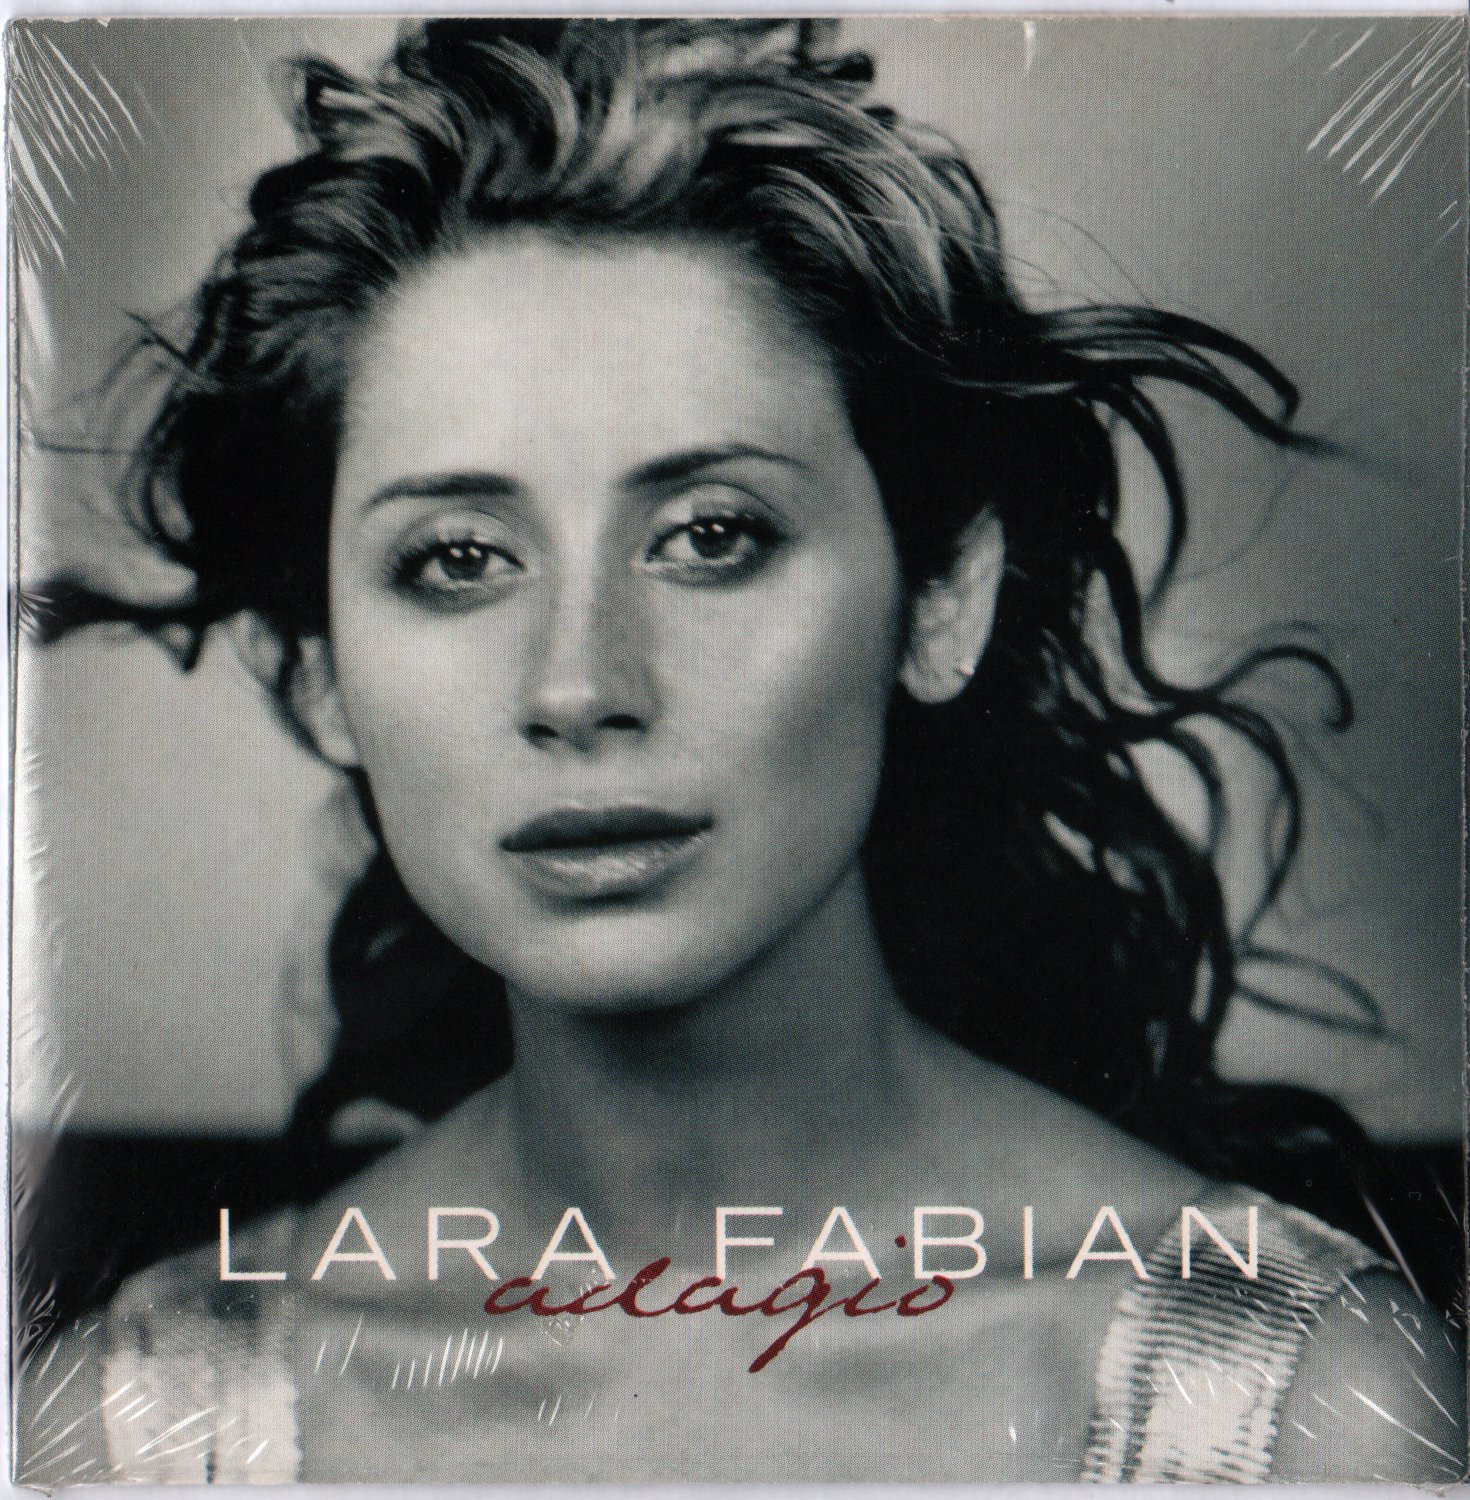 Lara Fabian - CD Single 2 Titres - Adagio - Amazon.com Music